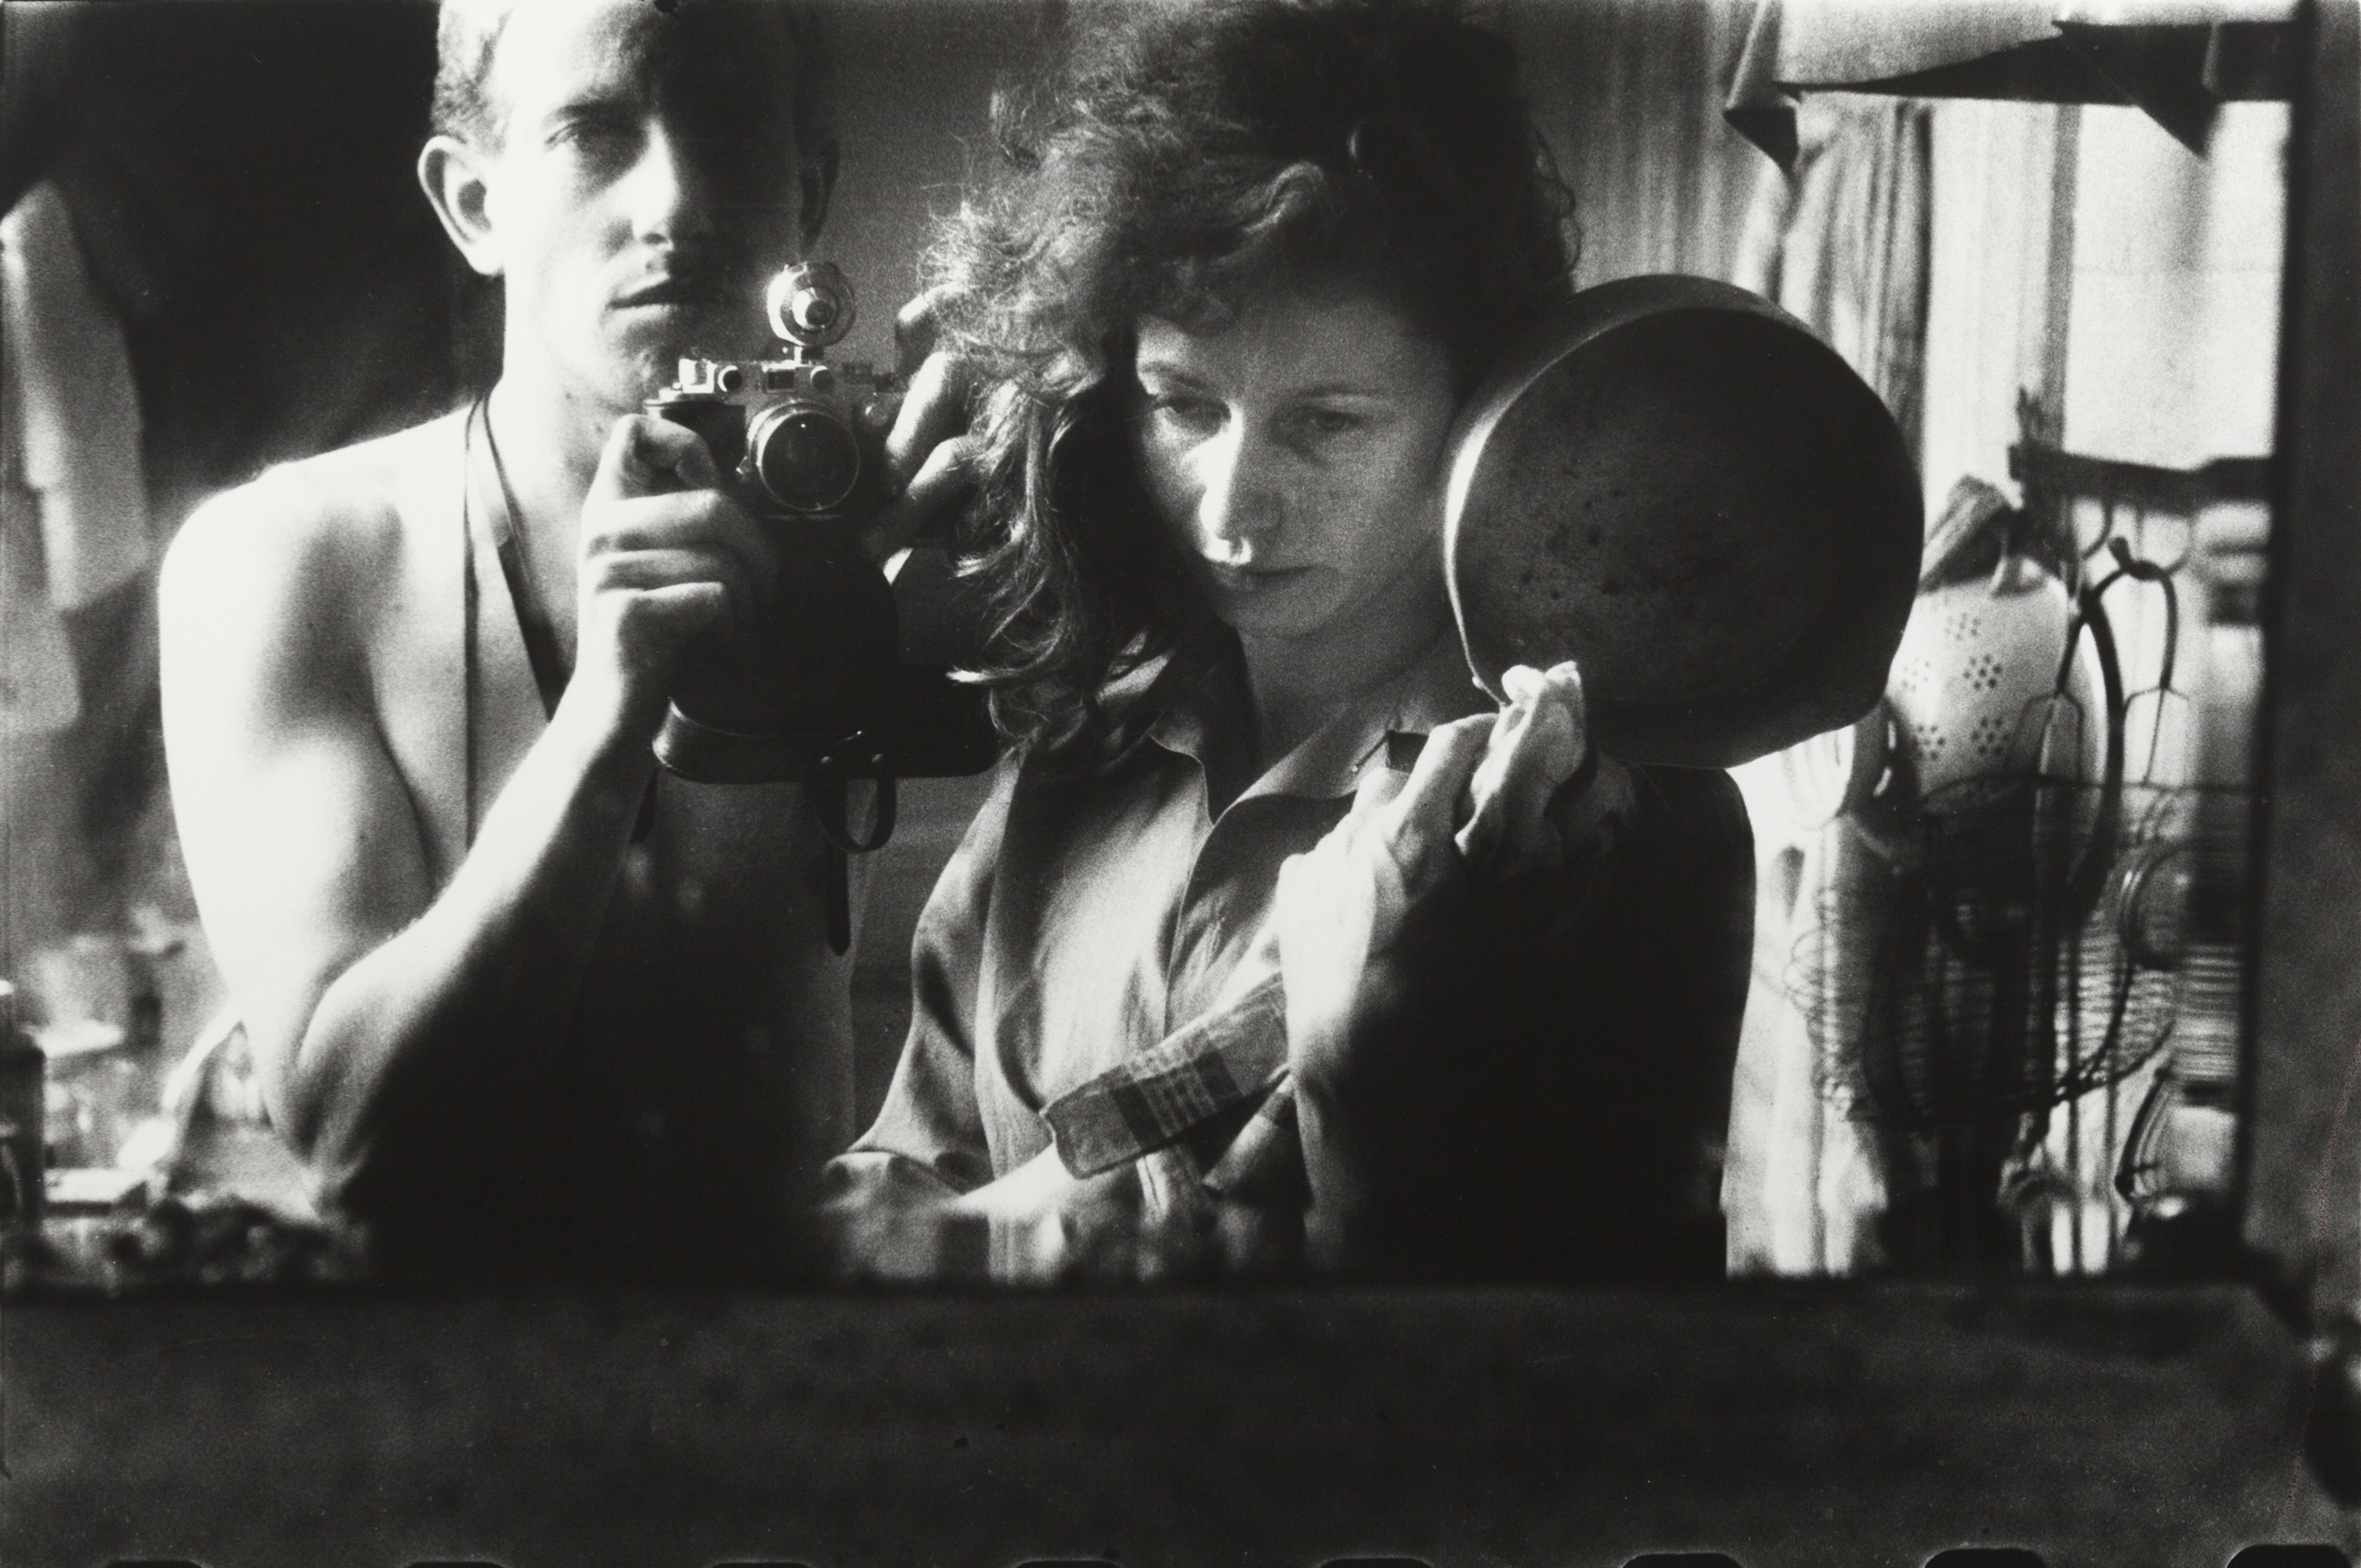 Selfportrait with Ata Kandó, Paris (1953) by Ed van der Elsken. Nederlands Fotomuseum / © Ed van der Elsken / Collection Ed van der Elsken estate.